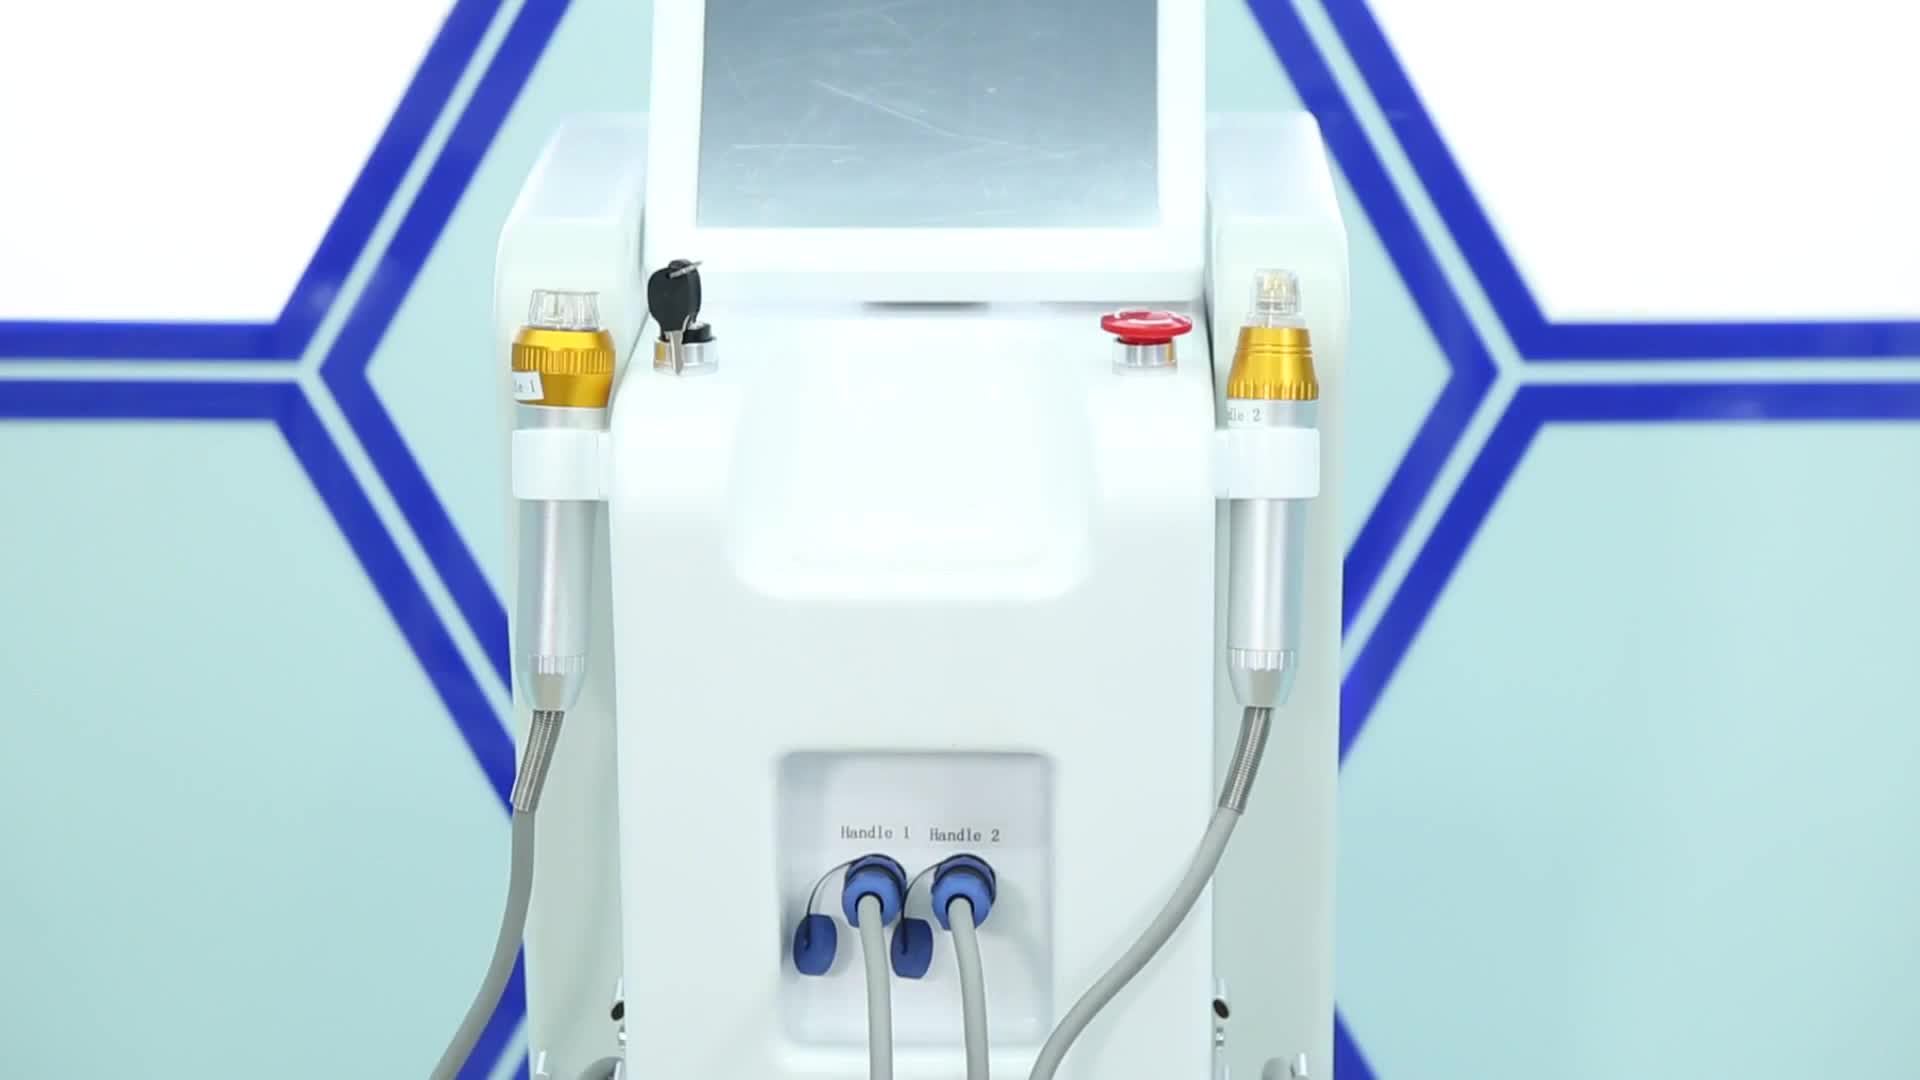 Nubway hot sale vertical factory price face lifting & wrinkle removal fractional rf microneedling